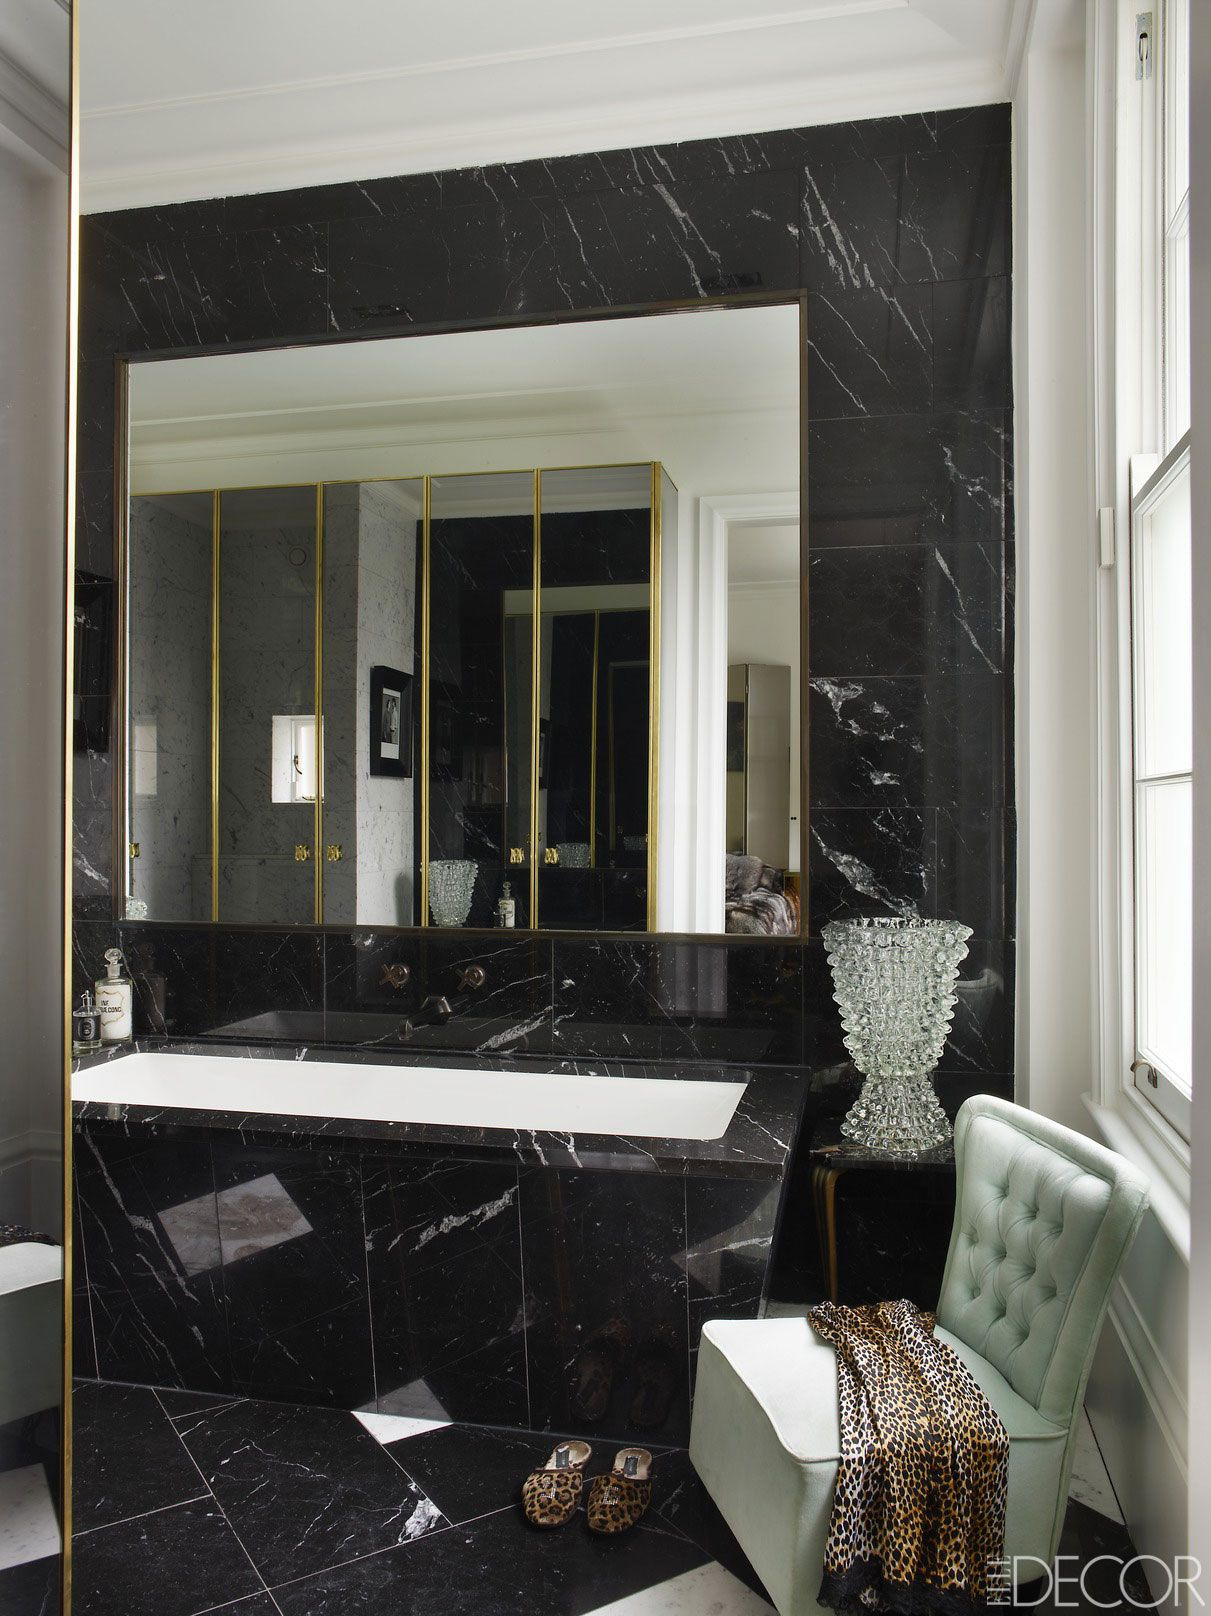 Black And White Bathroom Decor Design Ideas - Black and white bathrooms ideas